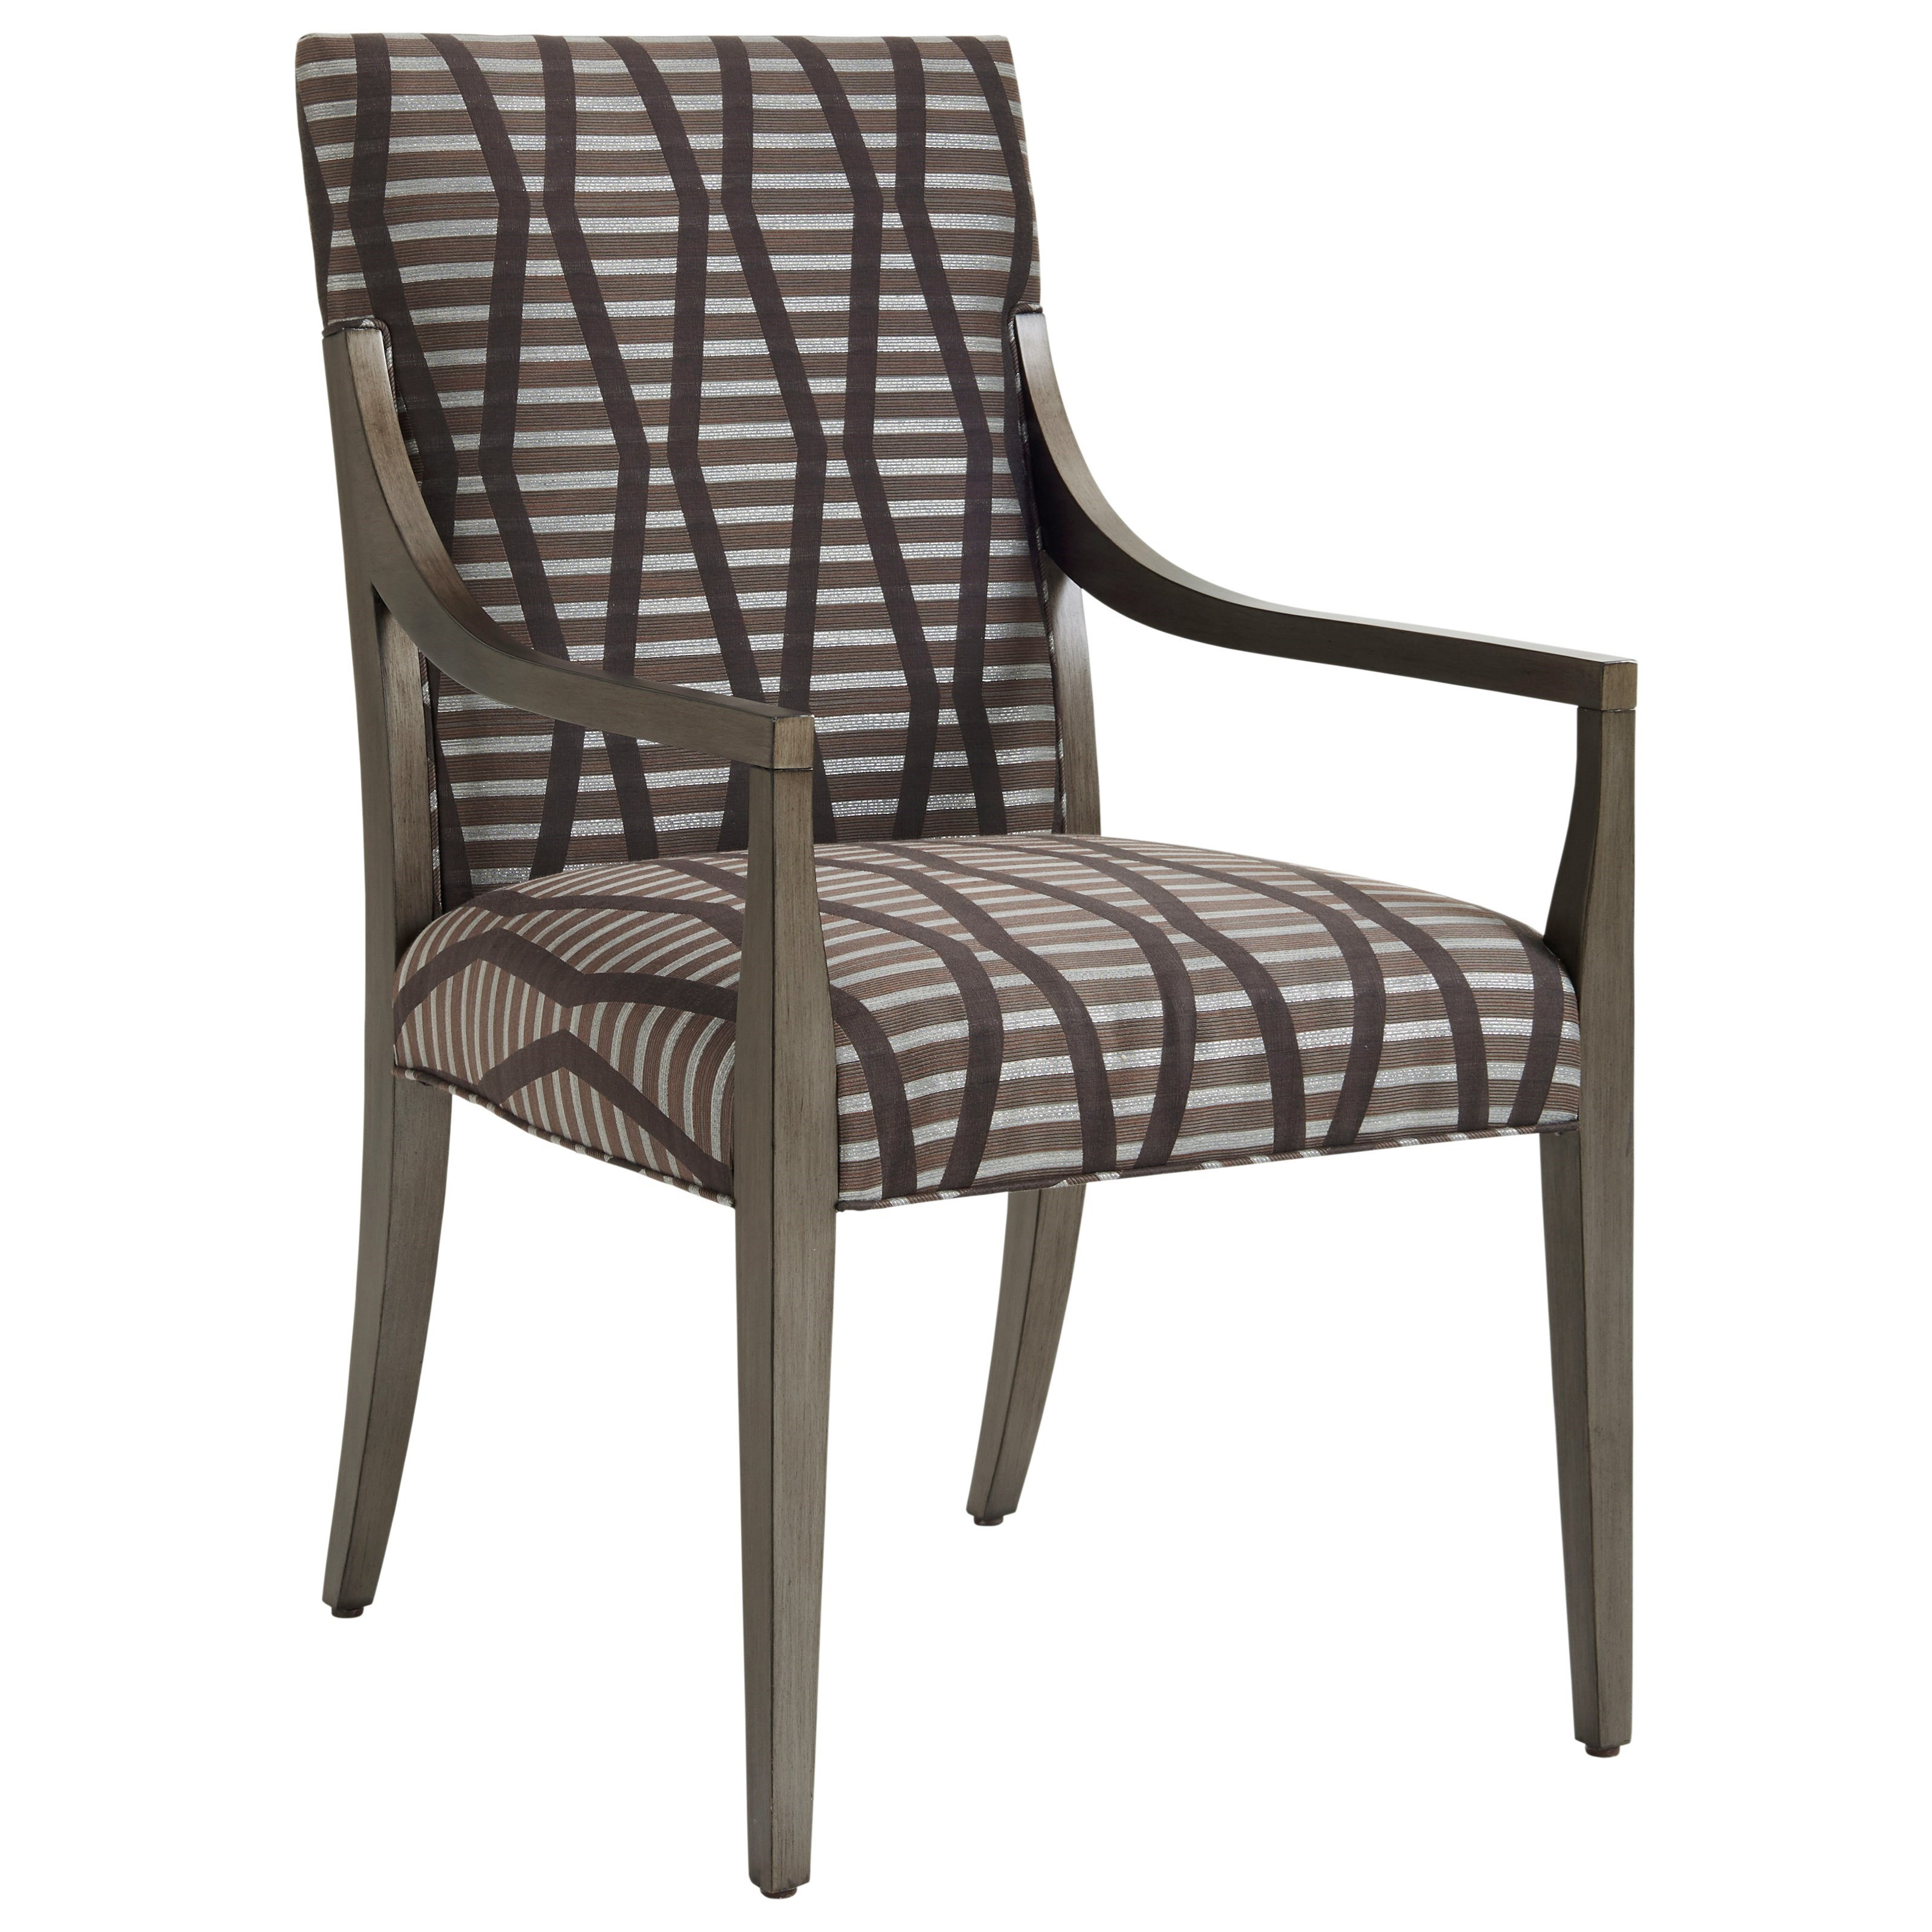 Ariana Saverne Upholstered Arm Chair by Lexington at Johnny Janosik